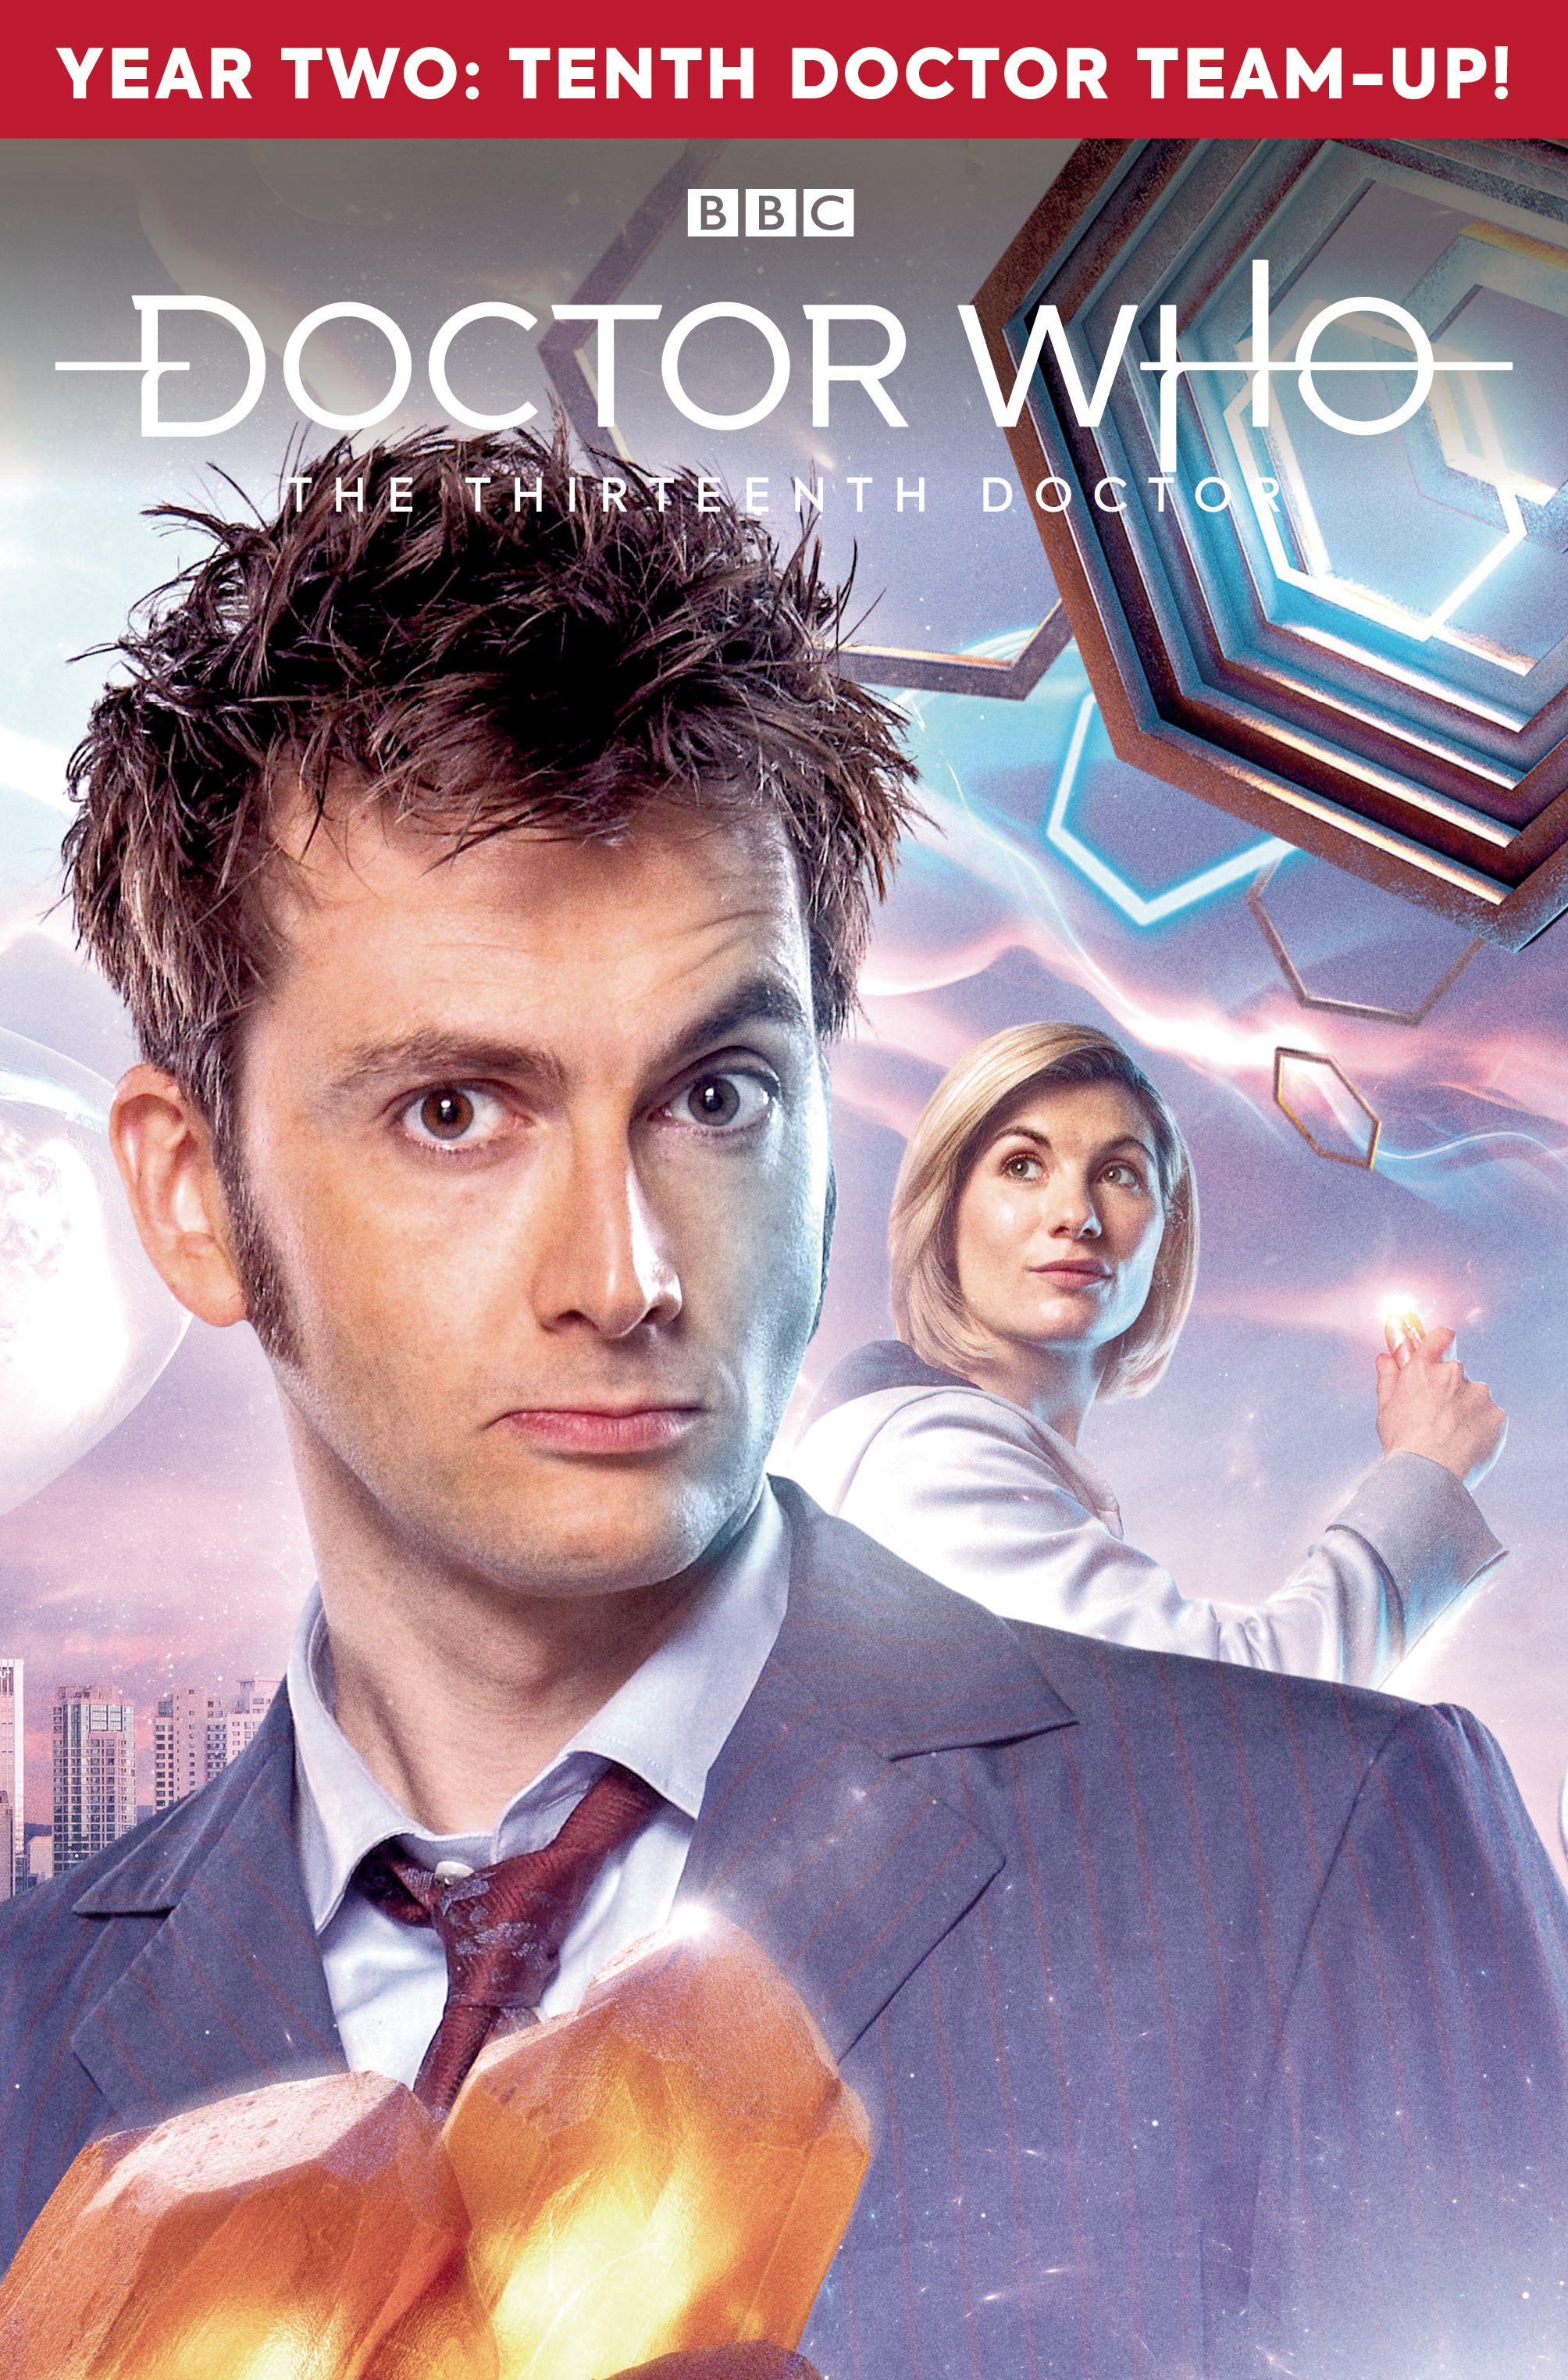 DOCTOR WHO 13TH SEASON TWO #2 CVR B PHOTO